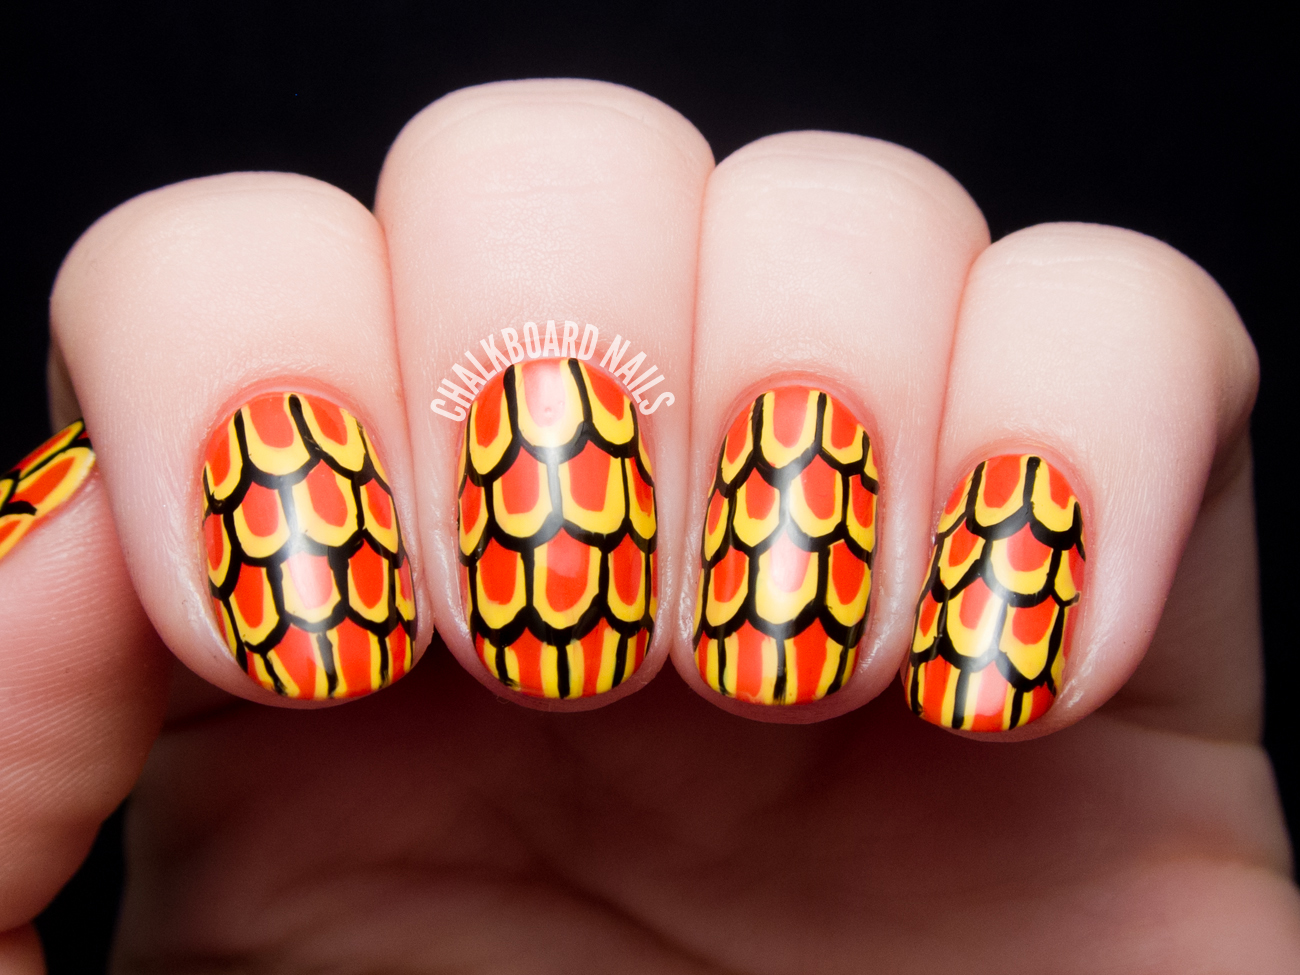 Stylized goldfish scale nail art by @chalkboardnails